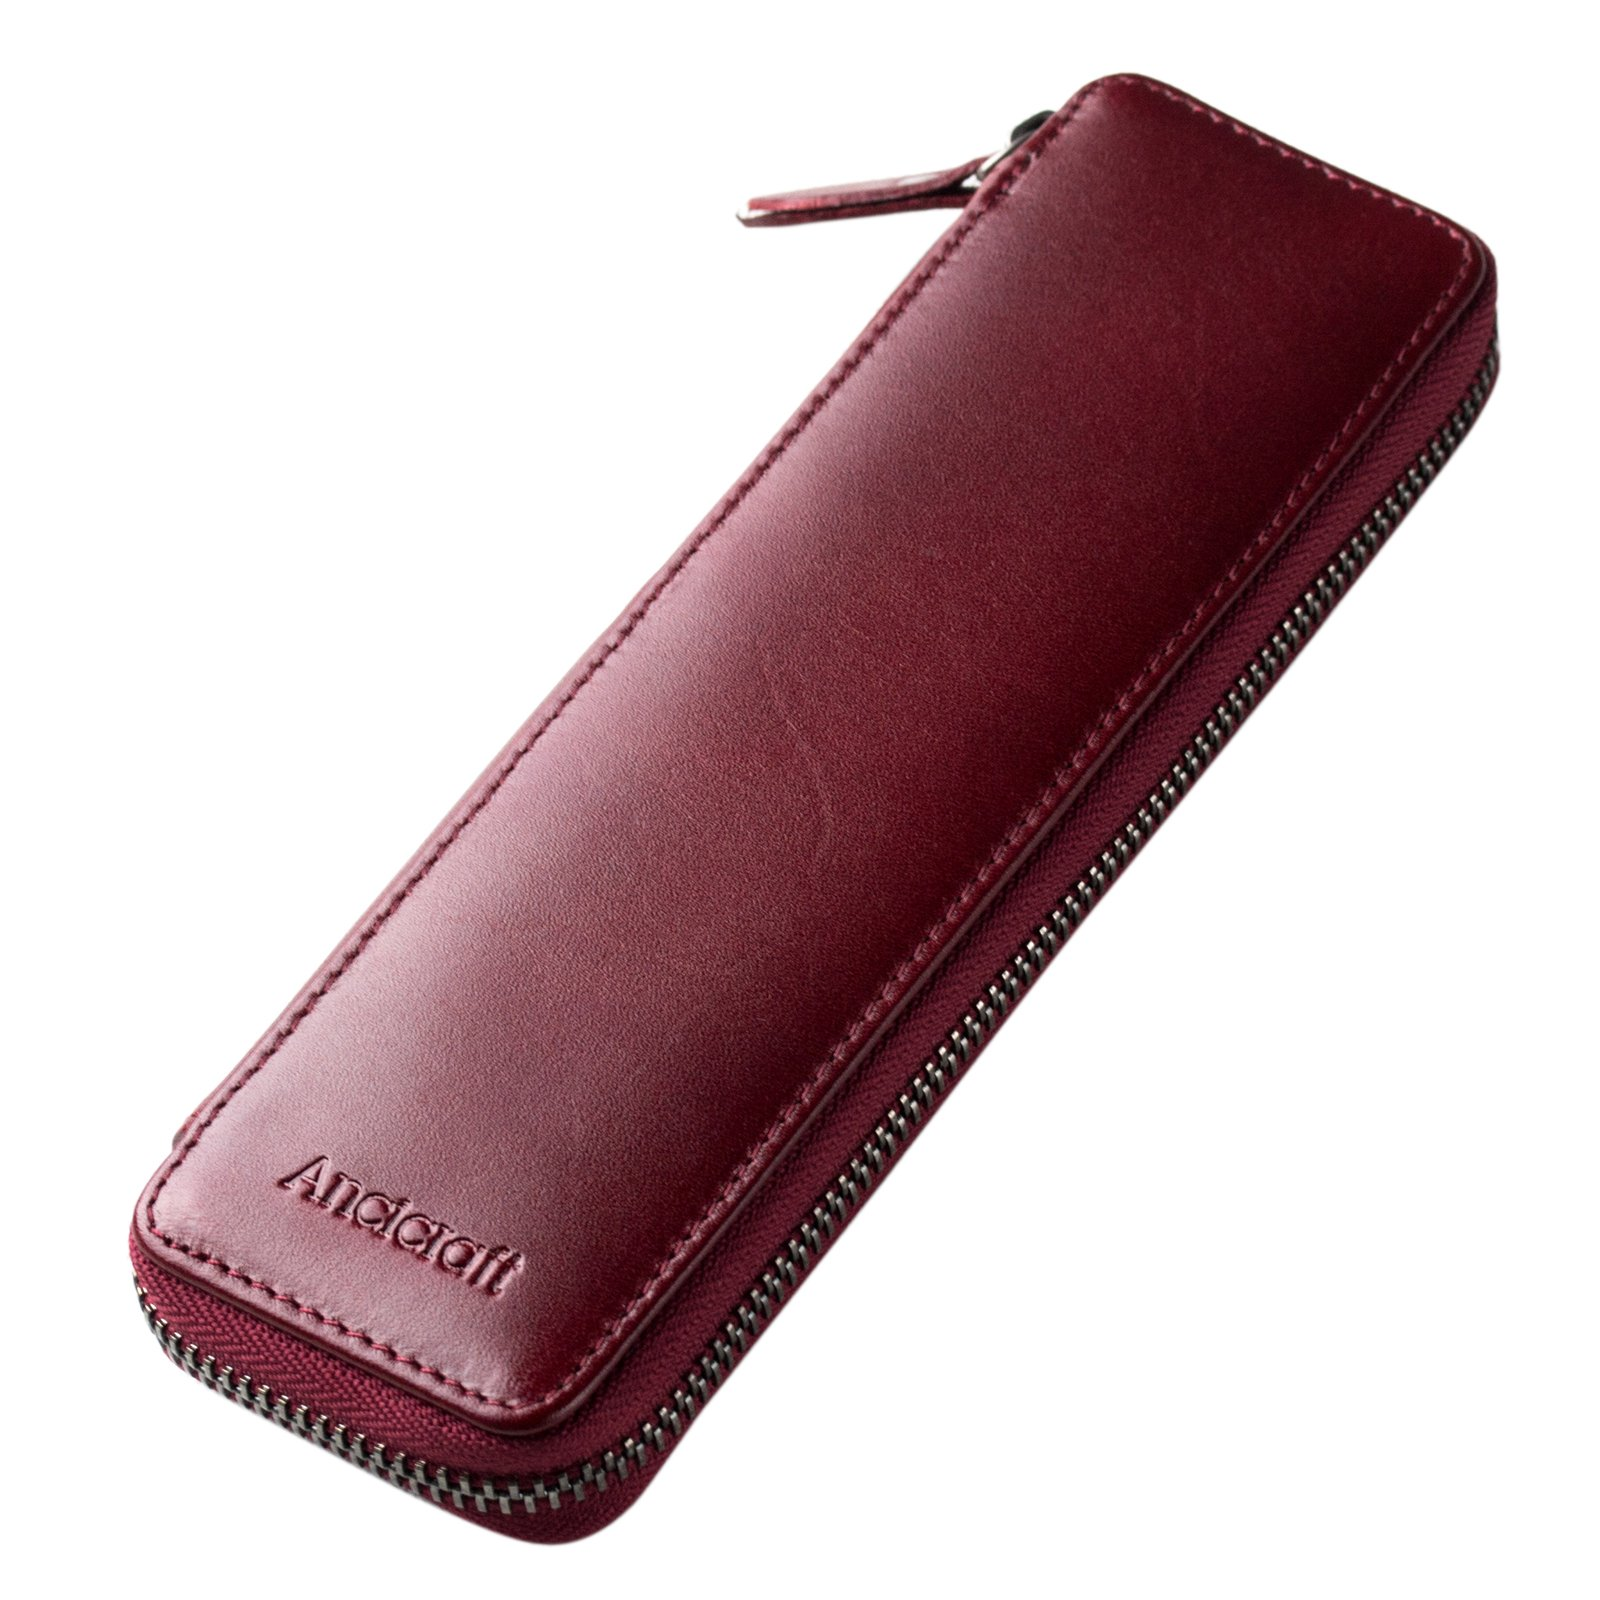 Ancicraft Pencil Case Leather Pouch Fountain Pen Holder With Zipper For Men Women (Wine Red) by Ancicraft